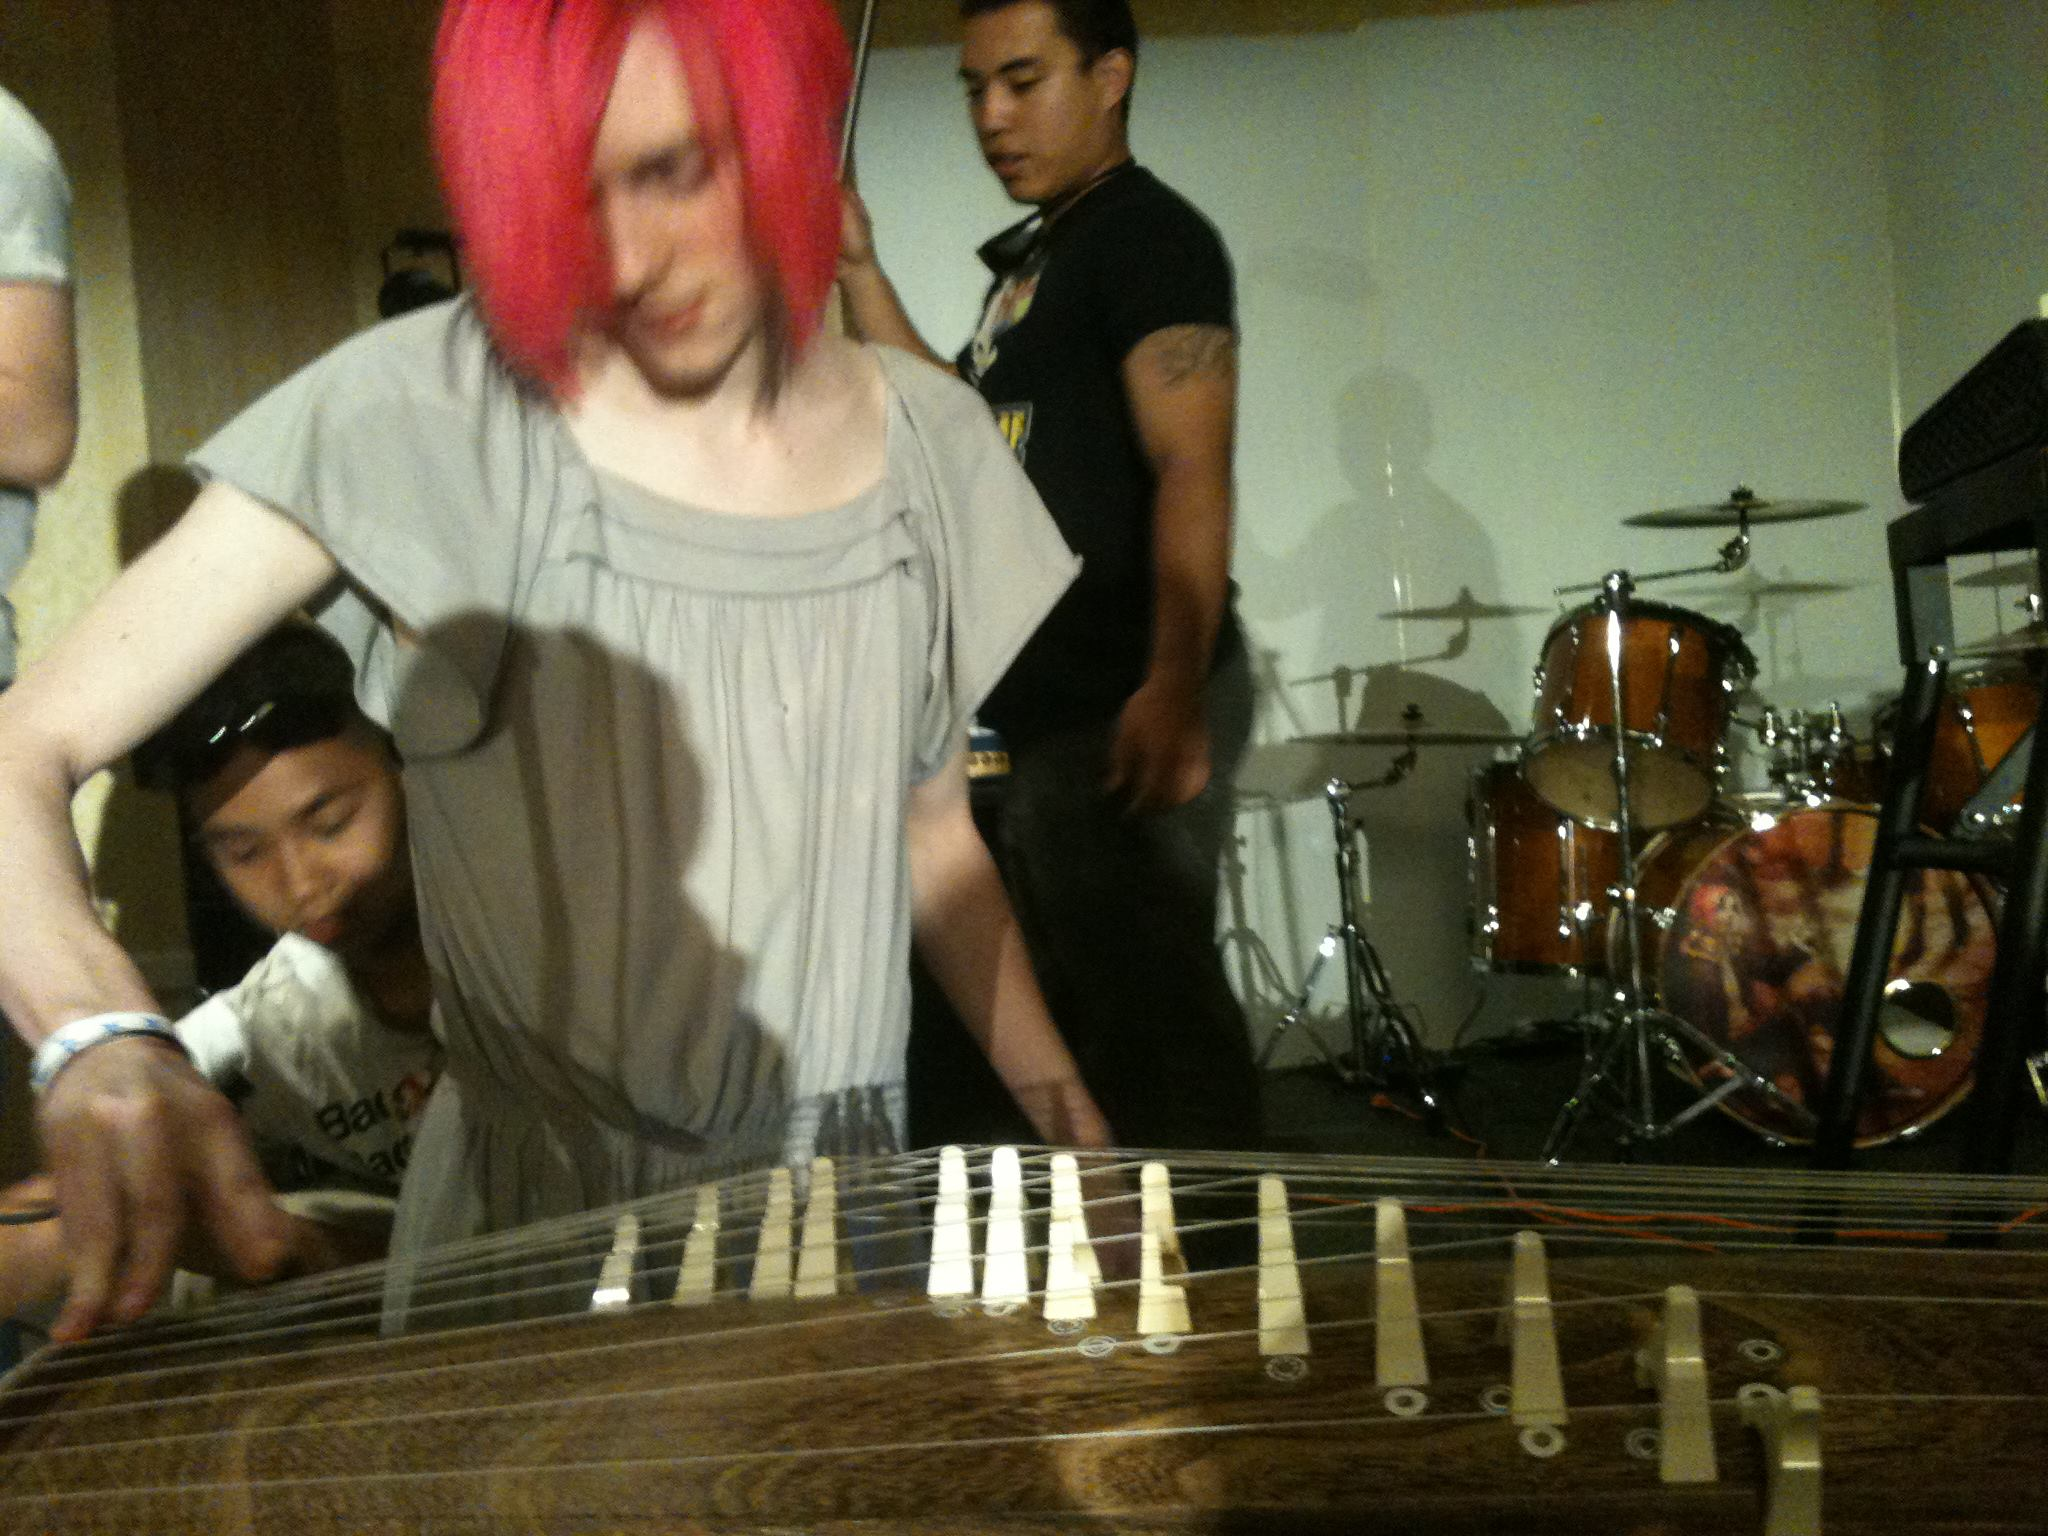 Robbi playing koto during soundcheck while Mike and Suan get ready to film the performance. Photo by Amanda Manzanares